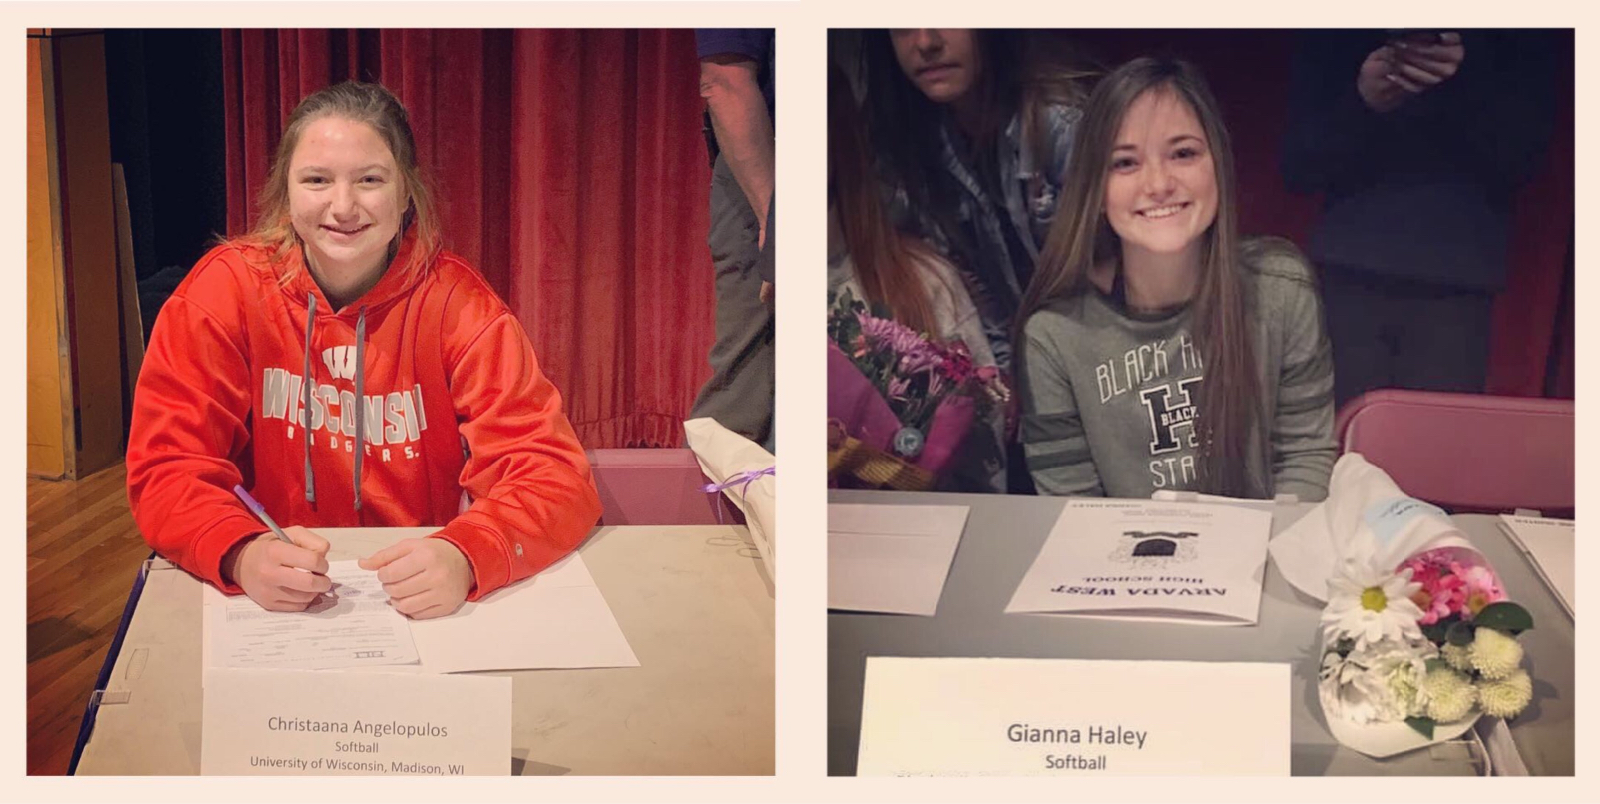 SB: Two celebrate National Signing Day